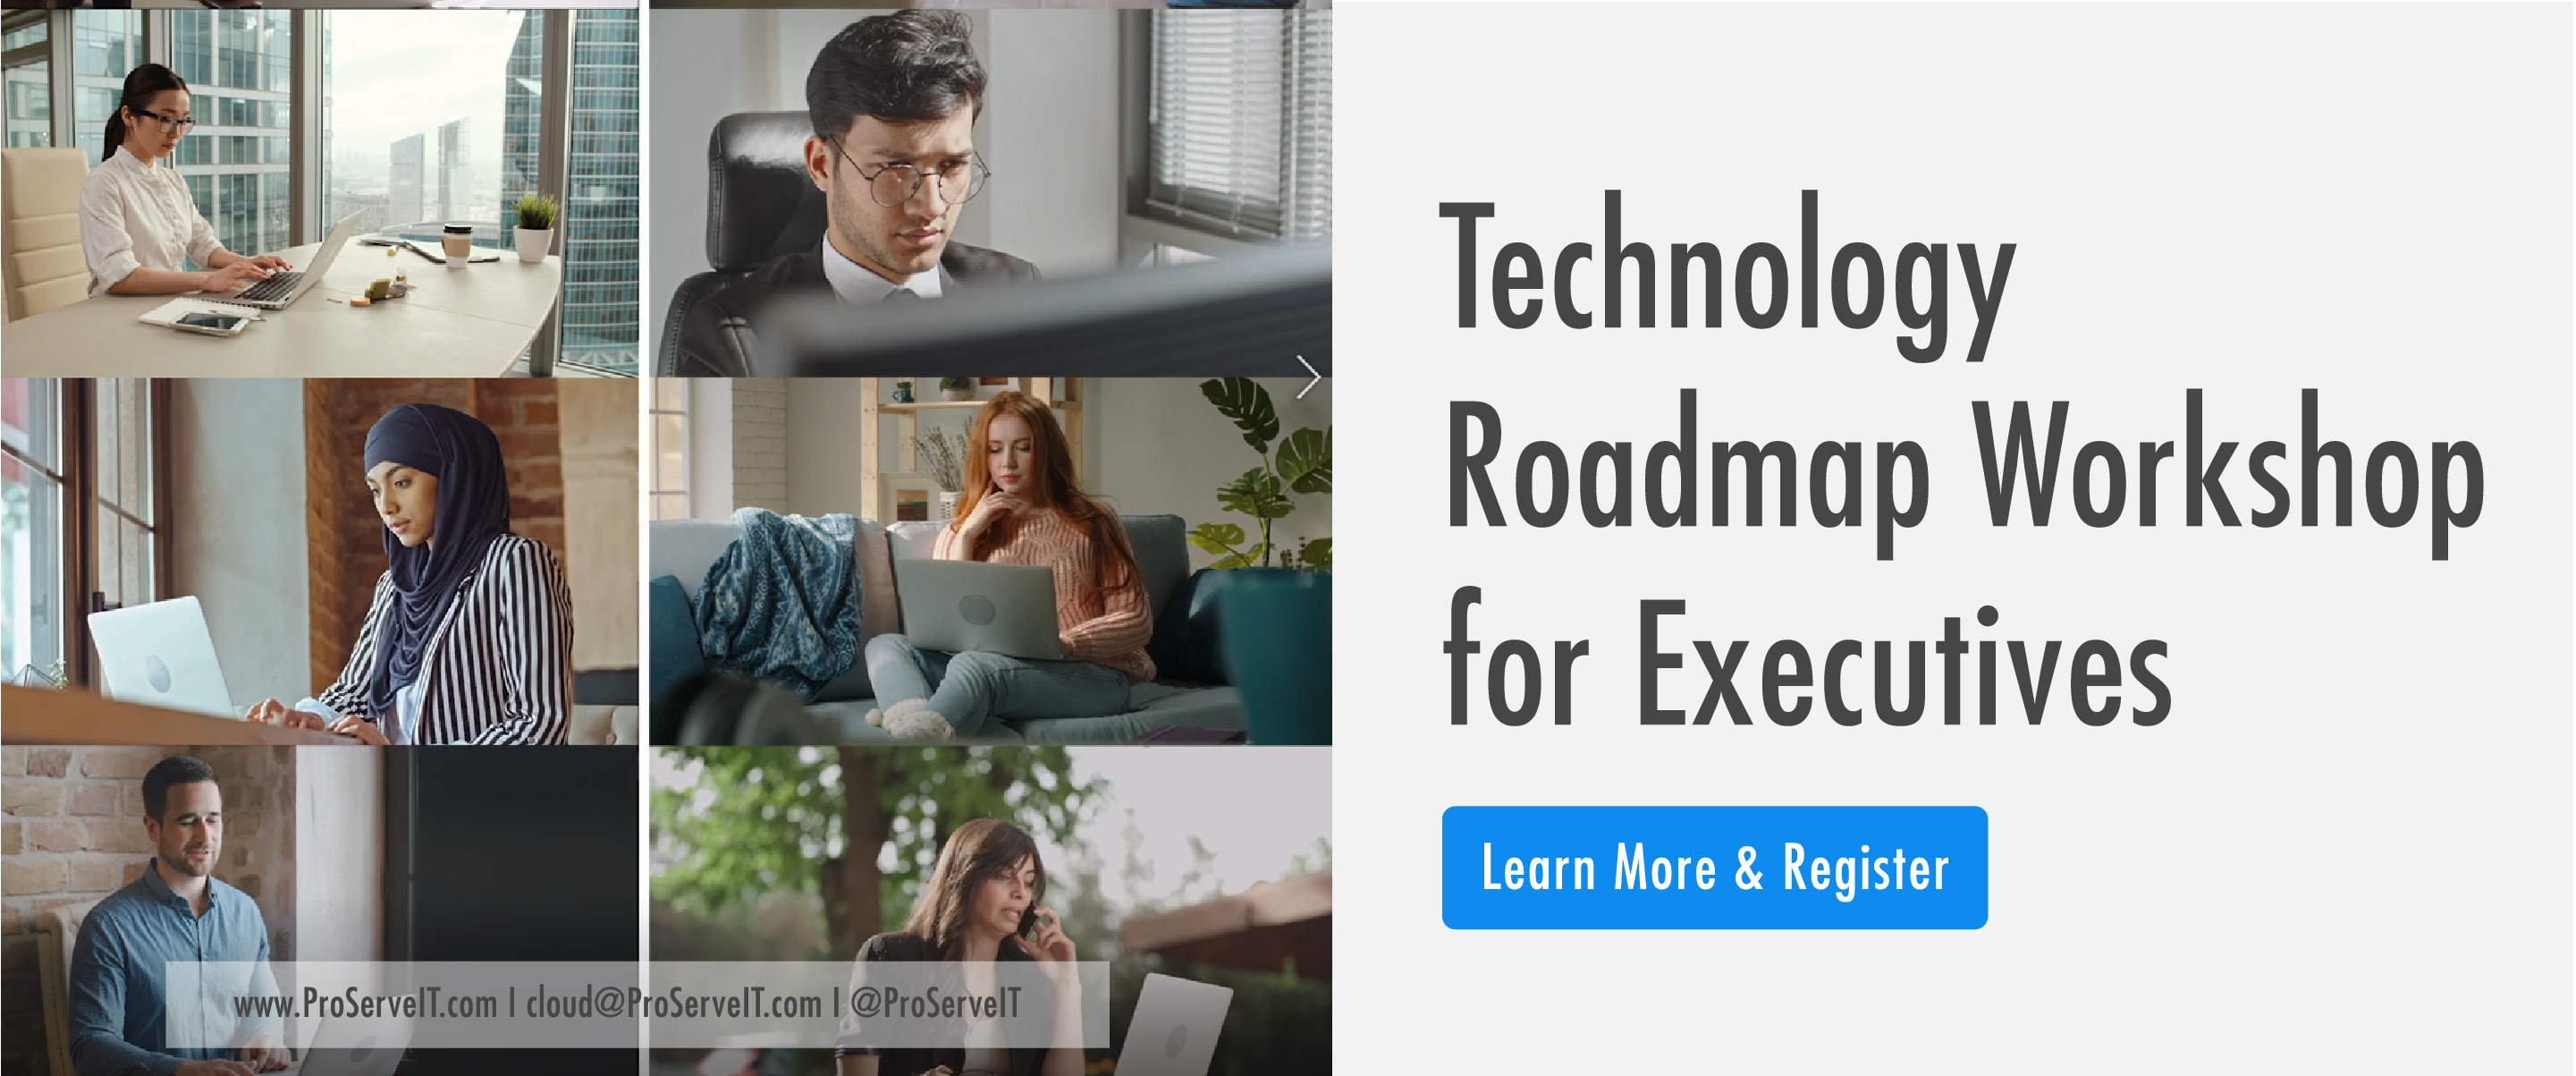 technology roadmap for executives